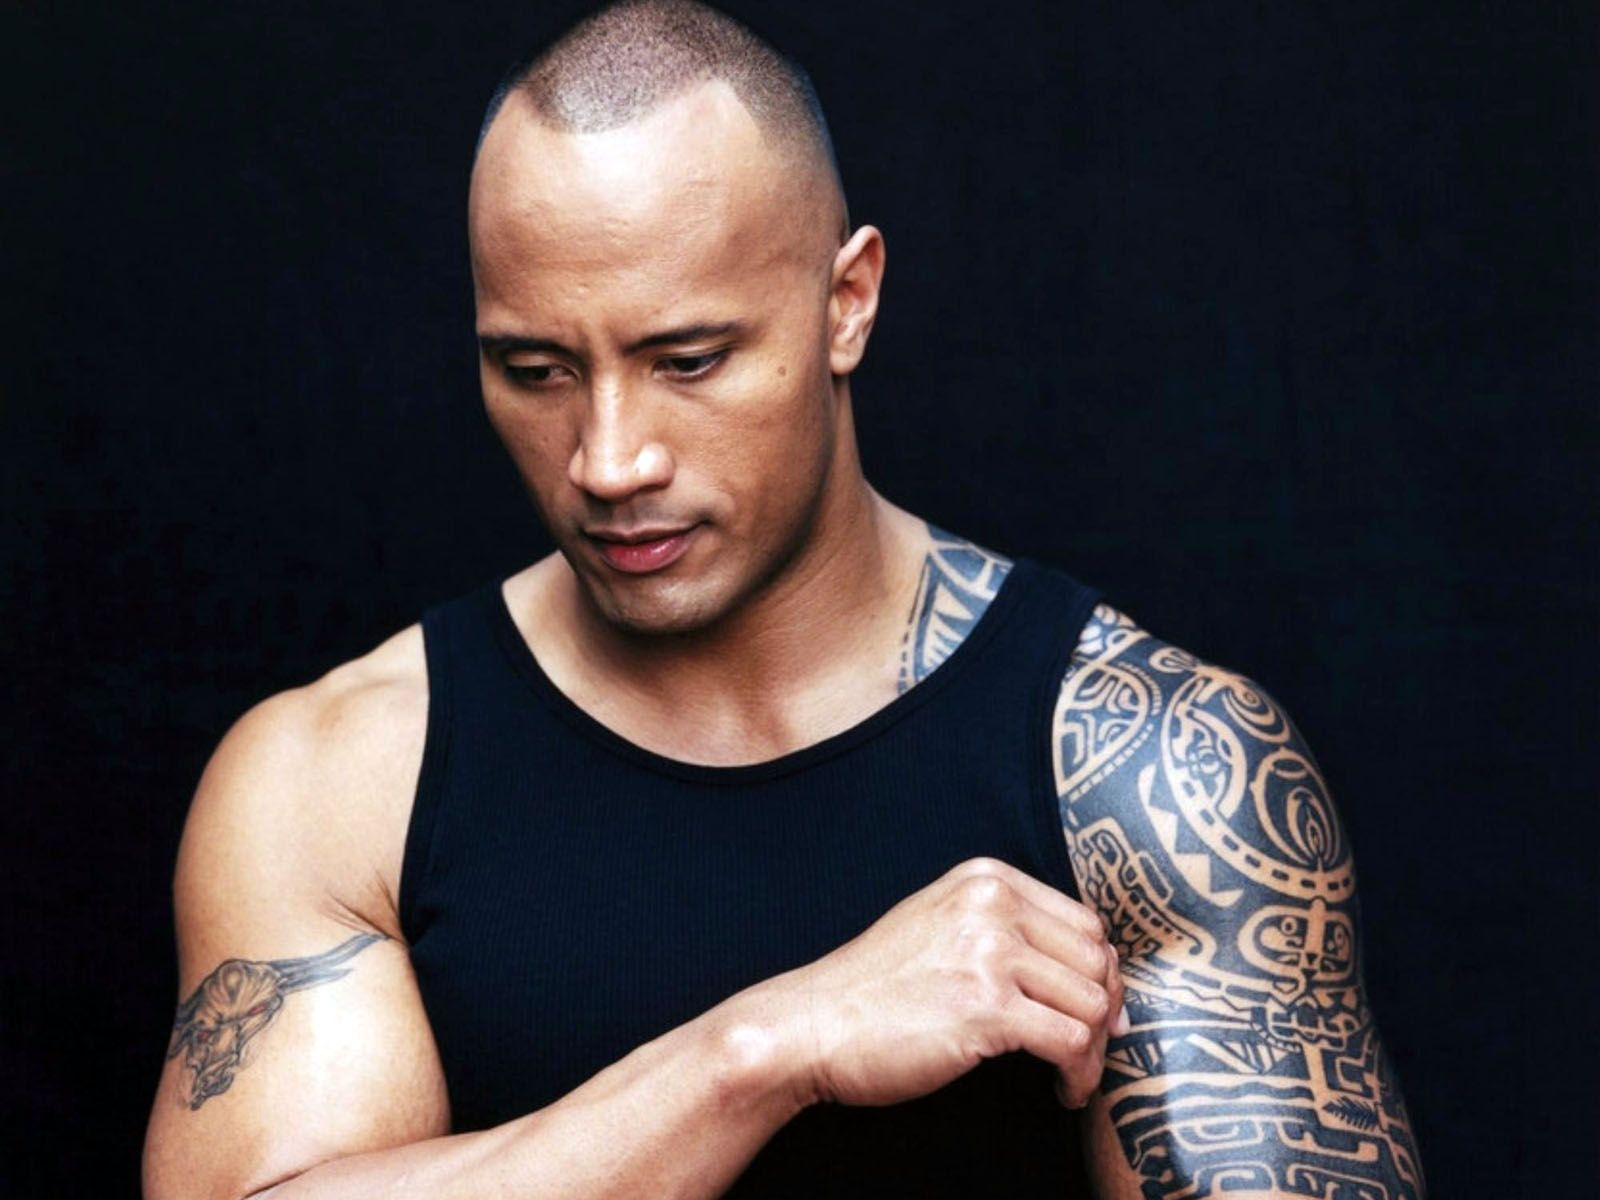 The Rock HD Hollywood Actors Wallpapers for Mobile and Desktop 1600x1200